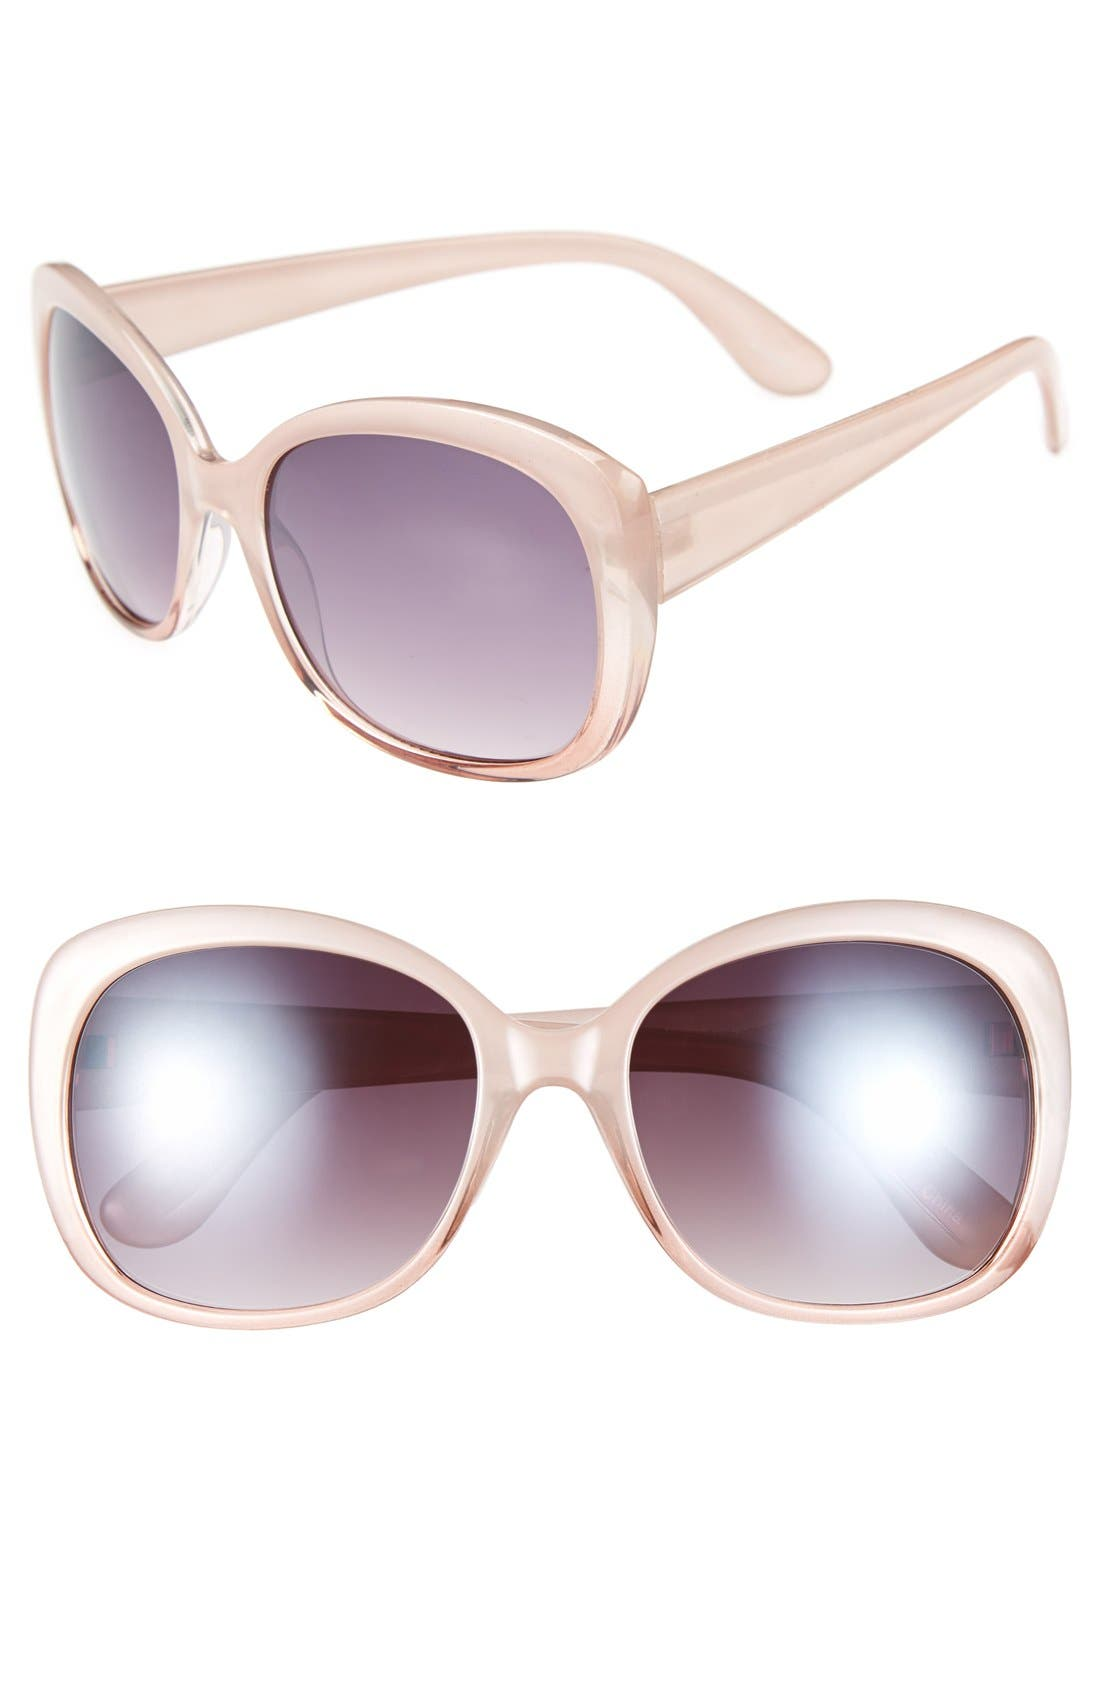 Alternate Image 1 Selected - Icon Eyewear 'Tokyo' 56mm Oversized Sunglasses (2 for $20)